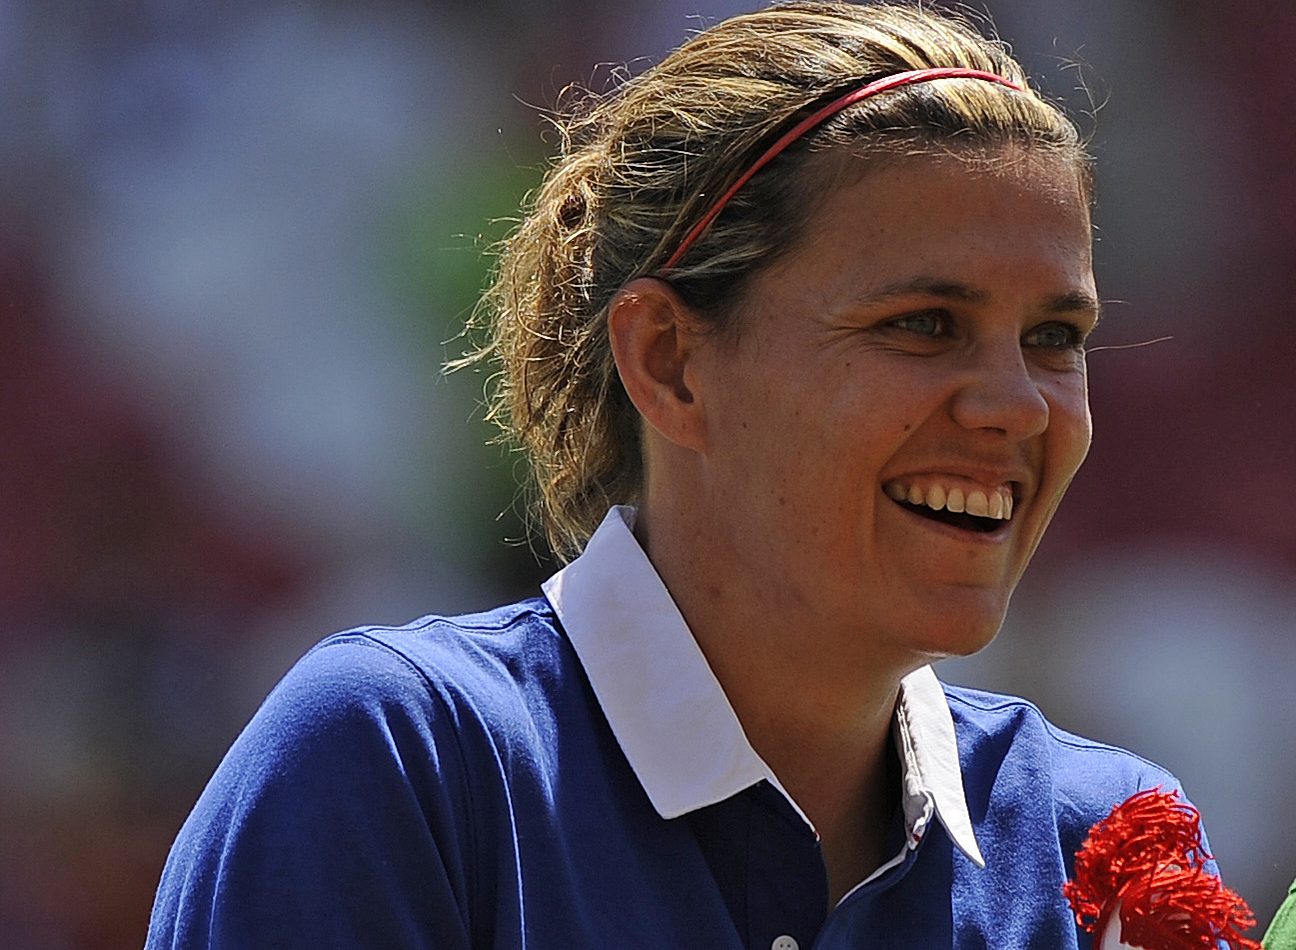 Christine Sinclair was Canada's 2012 athlete of the year. She'll be the focal point of Portland's star-laden quest of this year's NWSL crown. (Photo Copyright: Patti Giobetti | http://www.printroom.com/pro/psgiobetti)